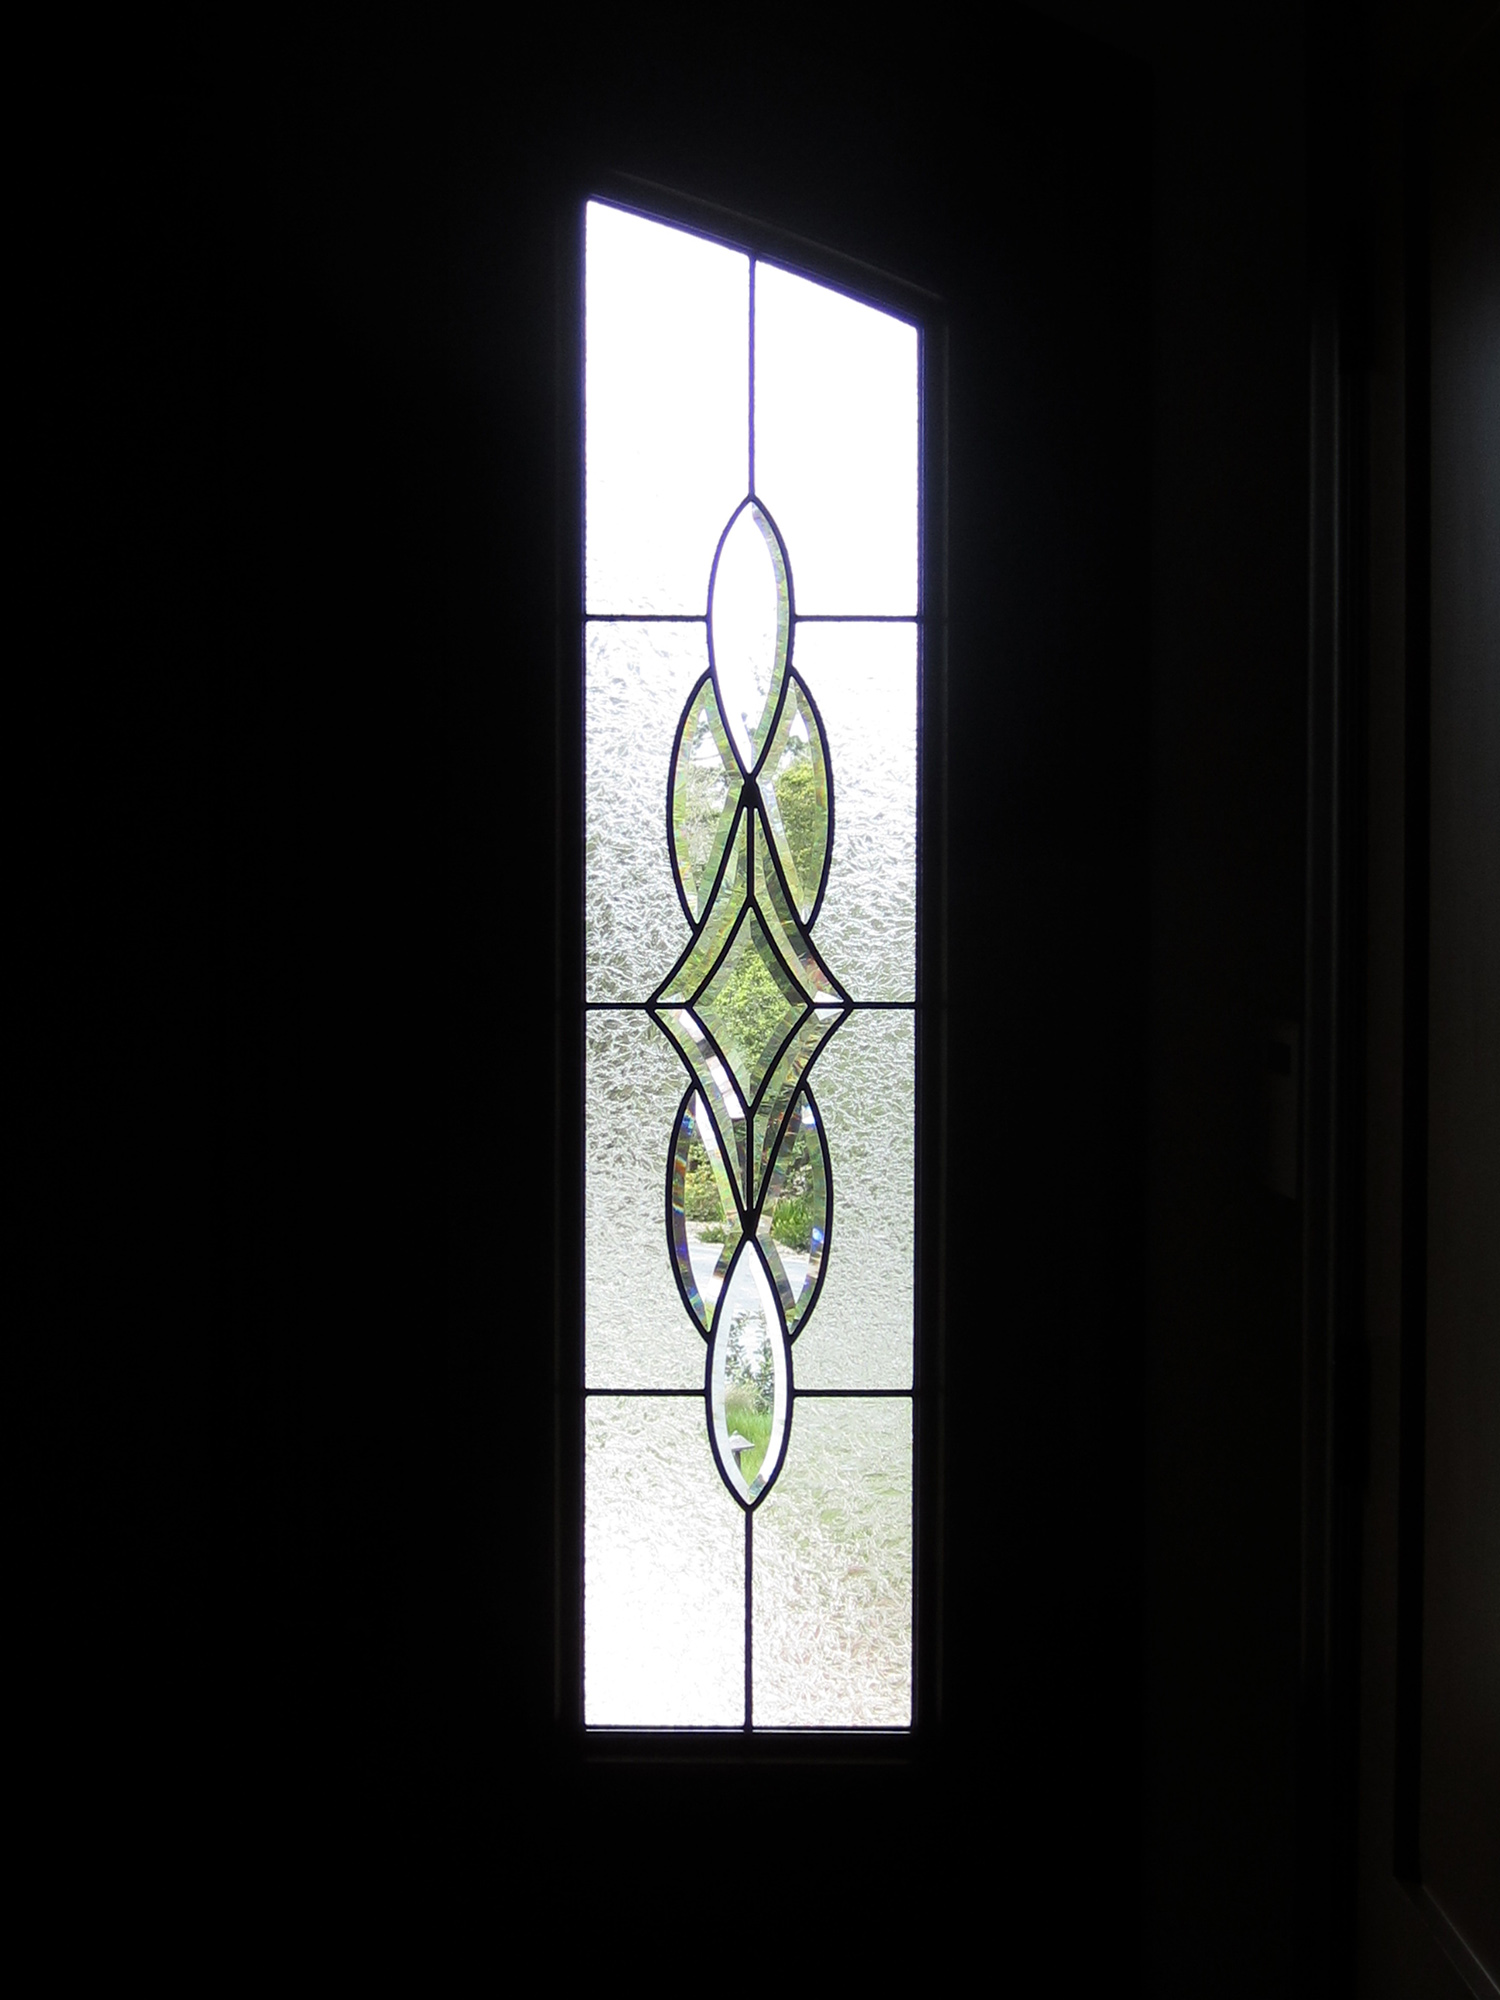 bevel cluster double glue chip glass beveled leaded glass stained glass window palo alto atherton california san francisco.jpg